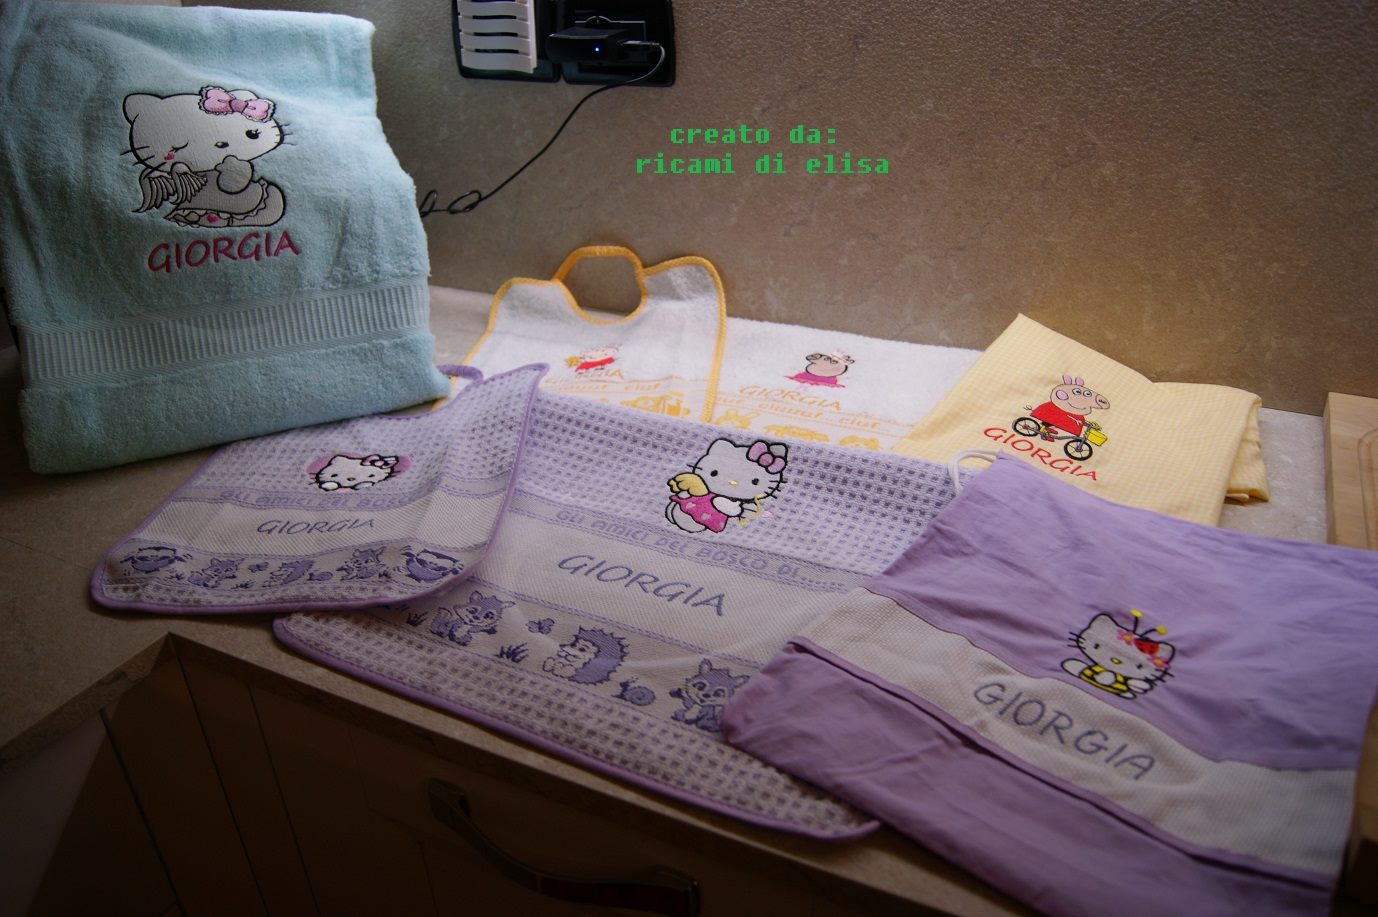 Embroidered Peppa Pig and Hello Kitty designs on towels and bibs